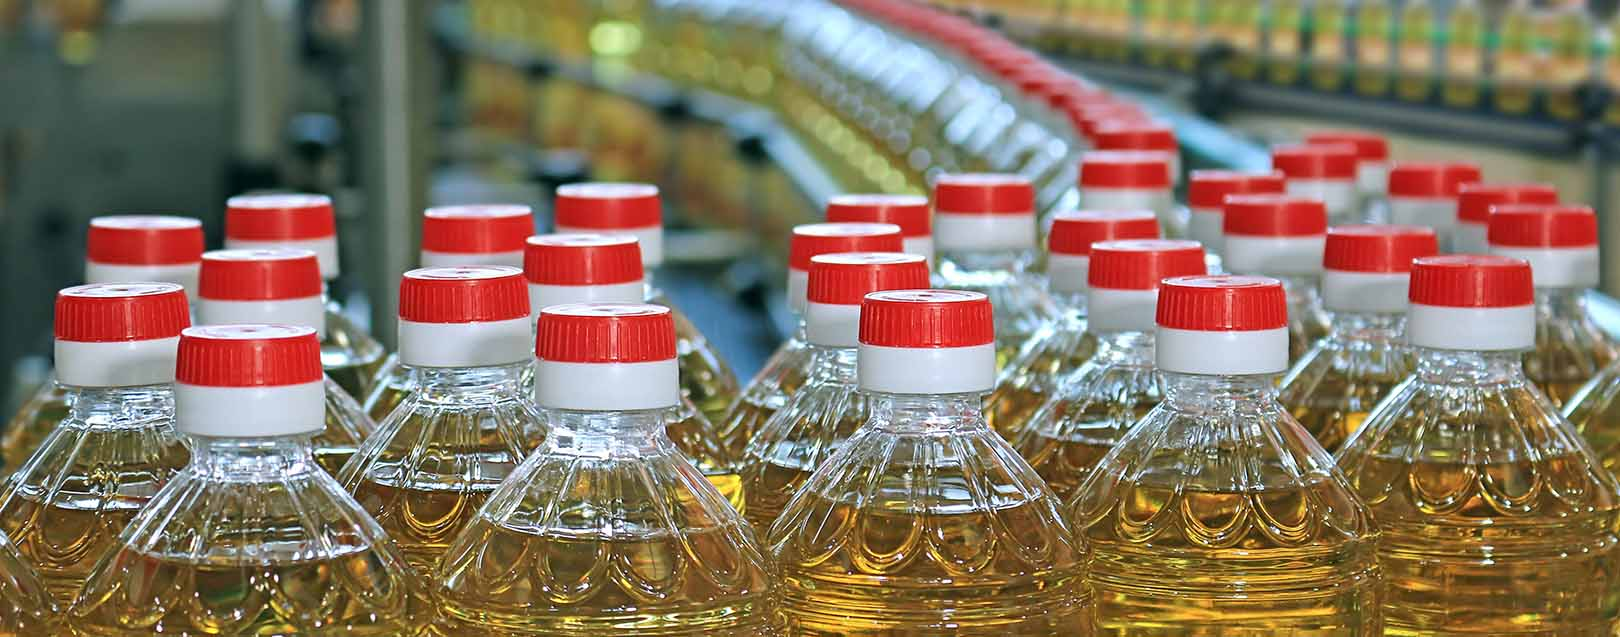 India's veg oil imports up 19% in Nov15-Mar16